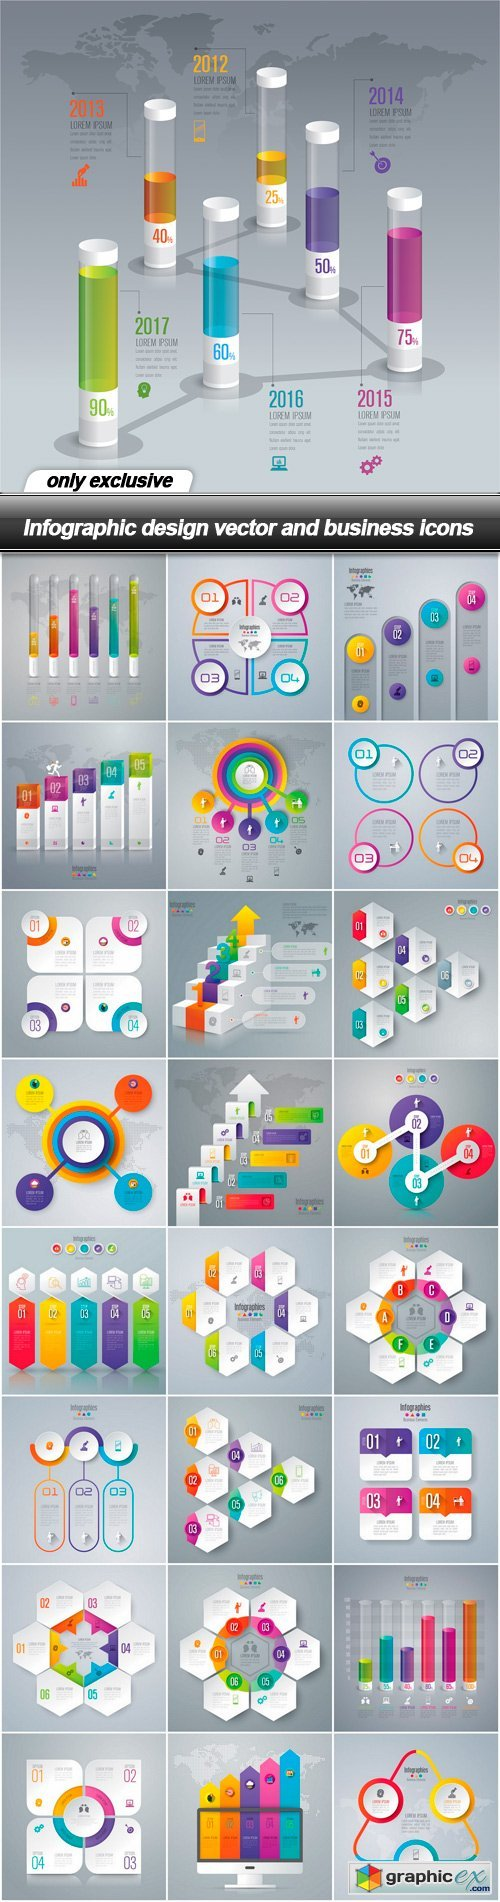 Infographic design vector and business icons - 25 EPS